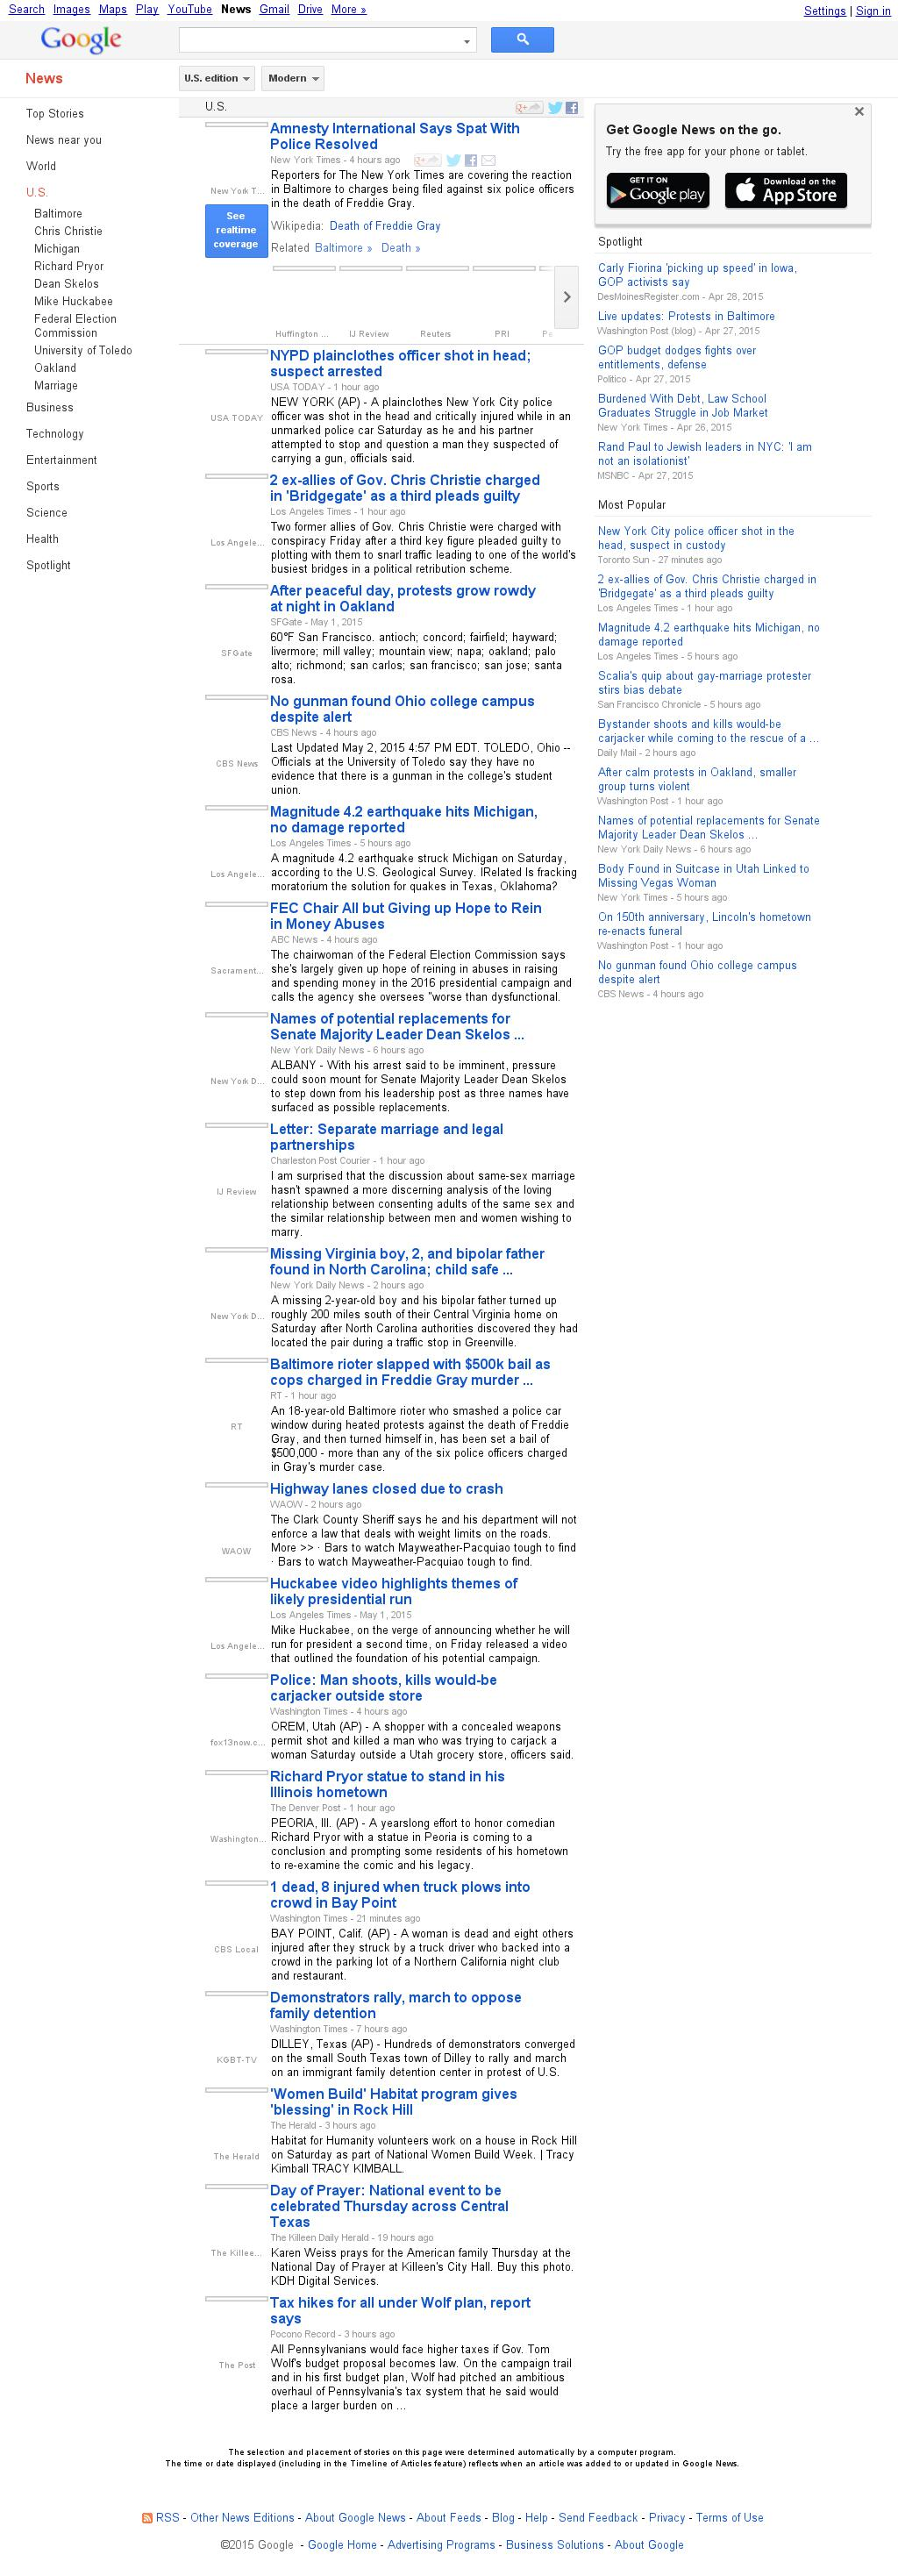 Google News: U.S. at Sunday May 3, 2015, 5:07 a.m. UTC